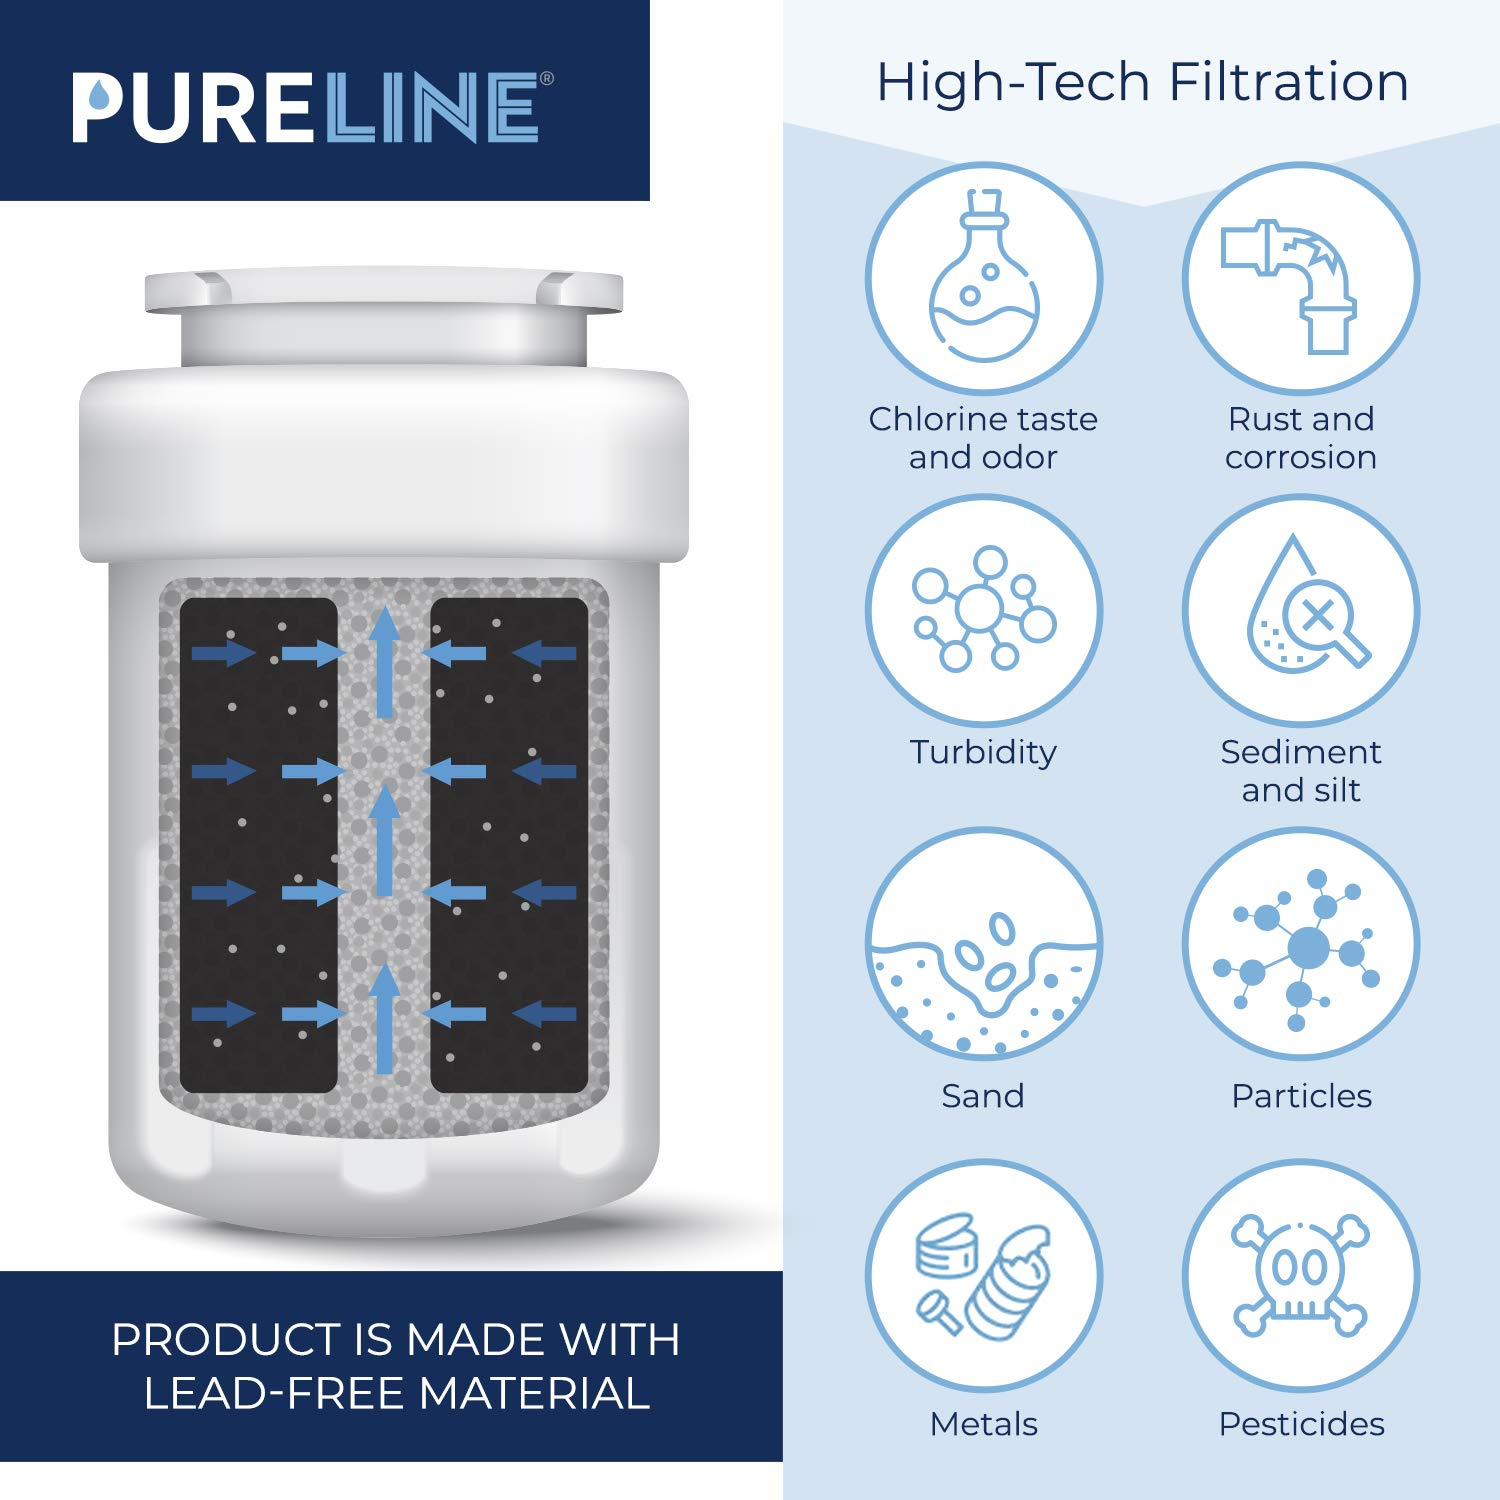 GE MWF Water Filter Replacement. Compatible GE Models: MWF, MWFA, MWFP, MWFAP, MWFINT, GWF, GWFA, HWF, HWFA, HDX FMG-1, Smart Water, GSE25GSHECSS, GSS25GMHGCES, 197D6321P006 - PURELINE (3 Pack)